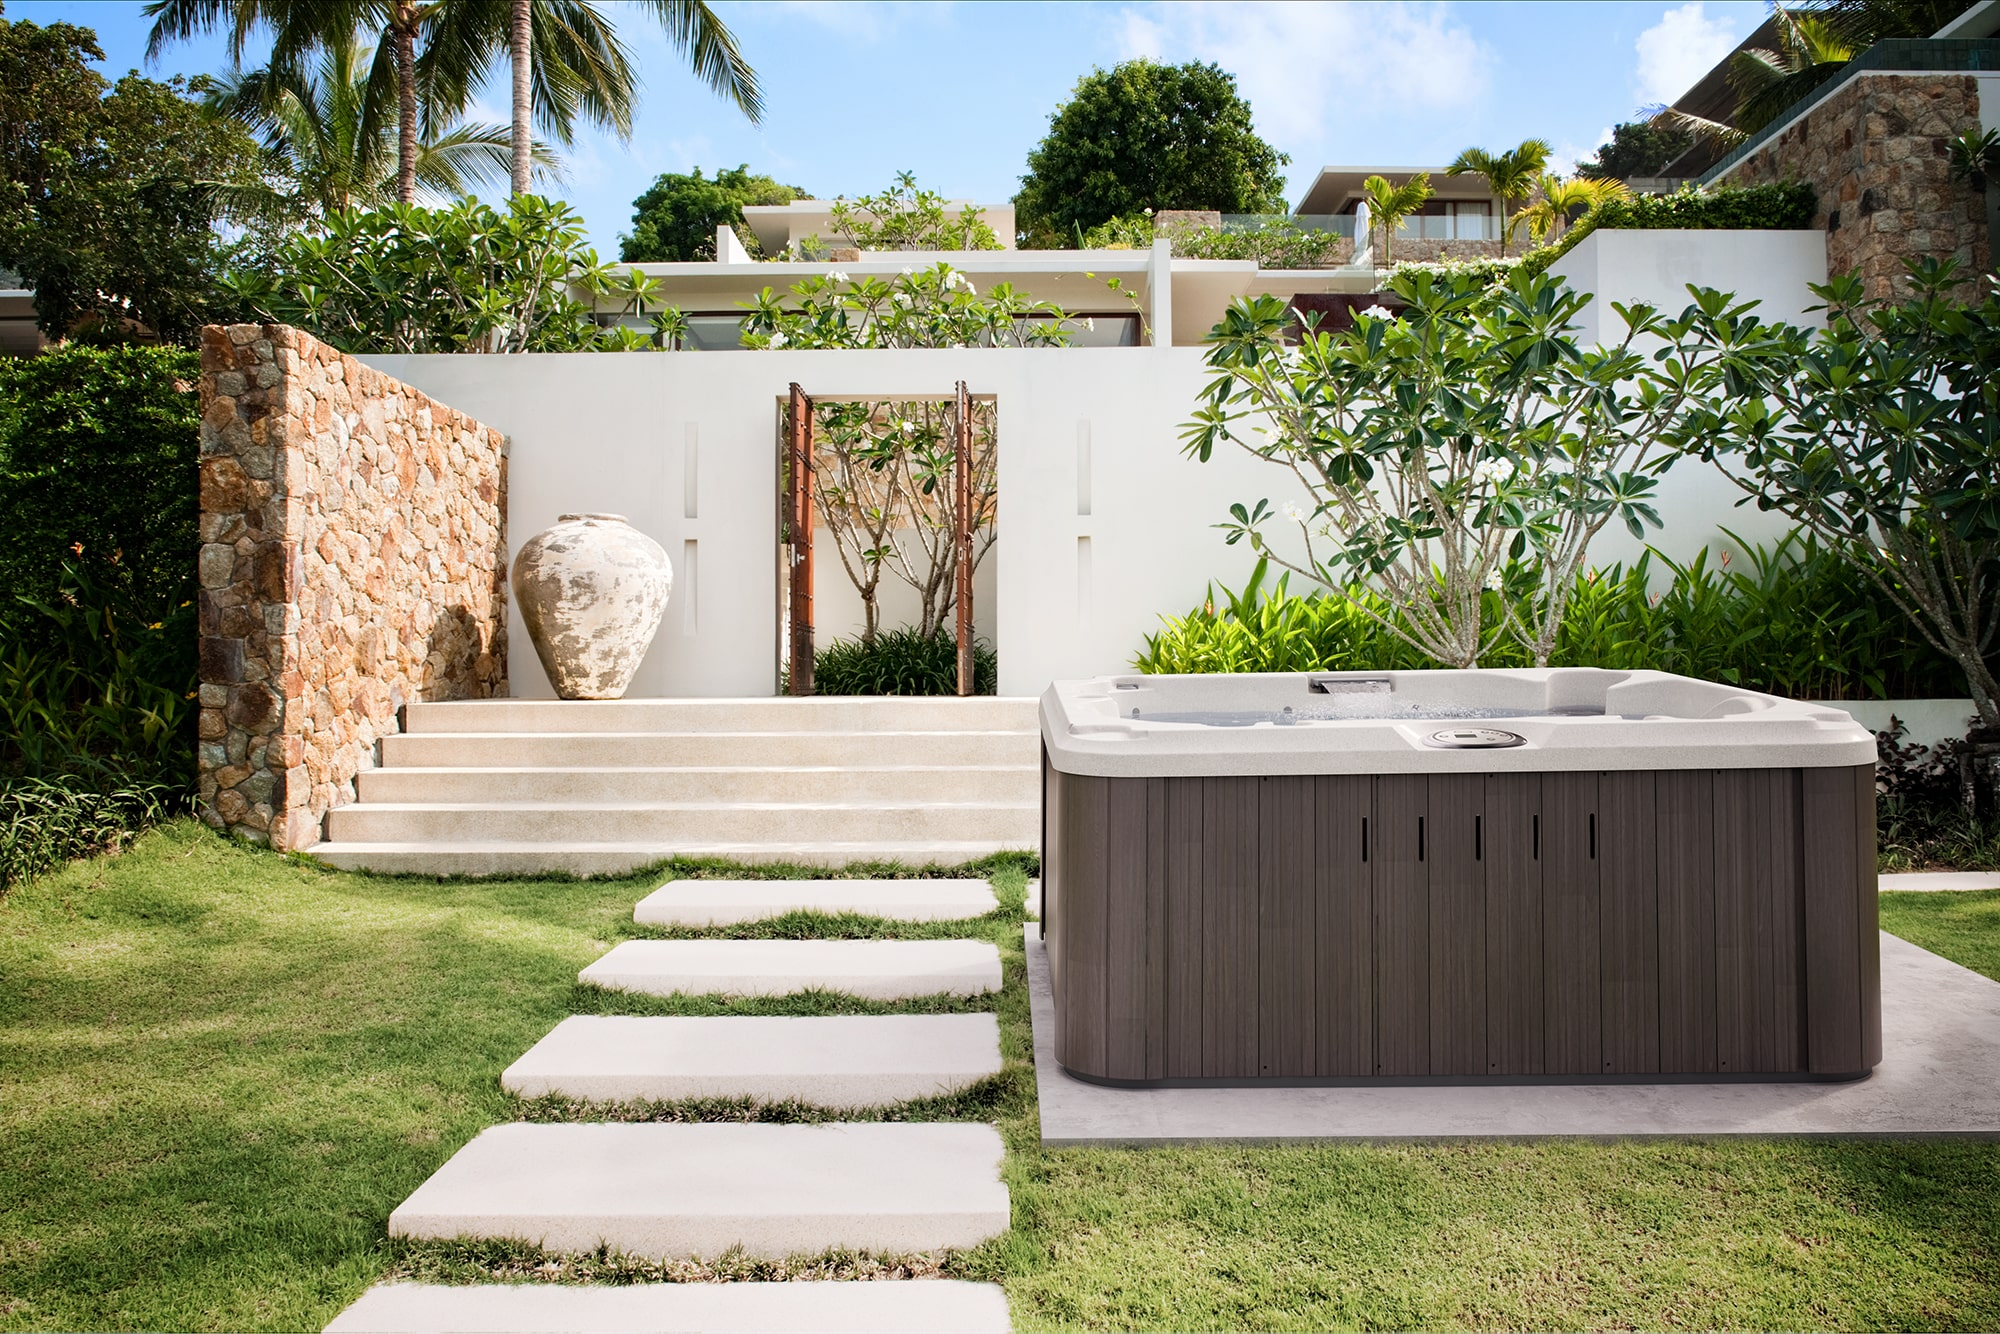 jacuzzi-hot-tub-install outdoors